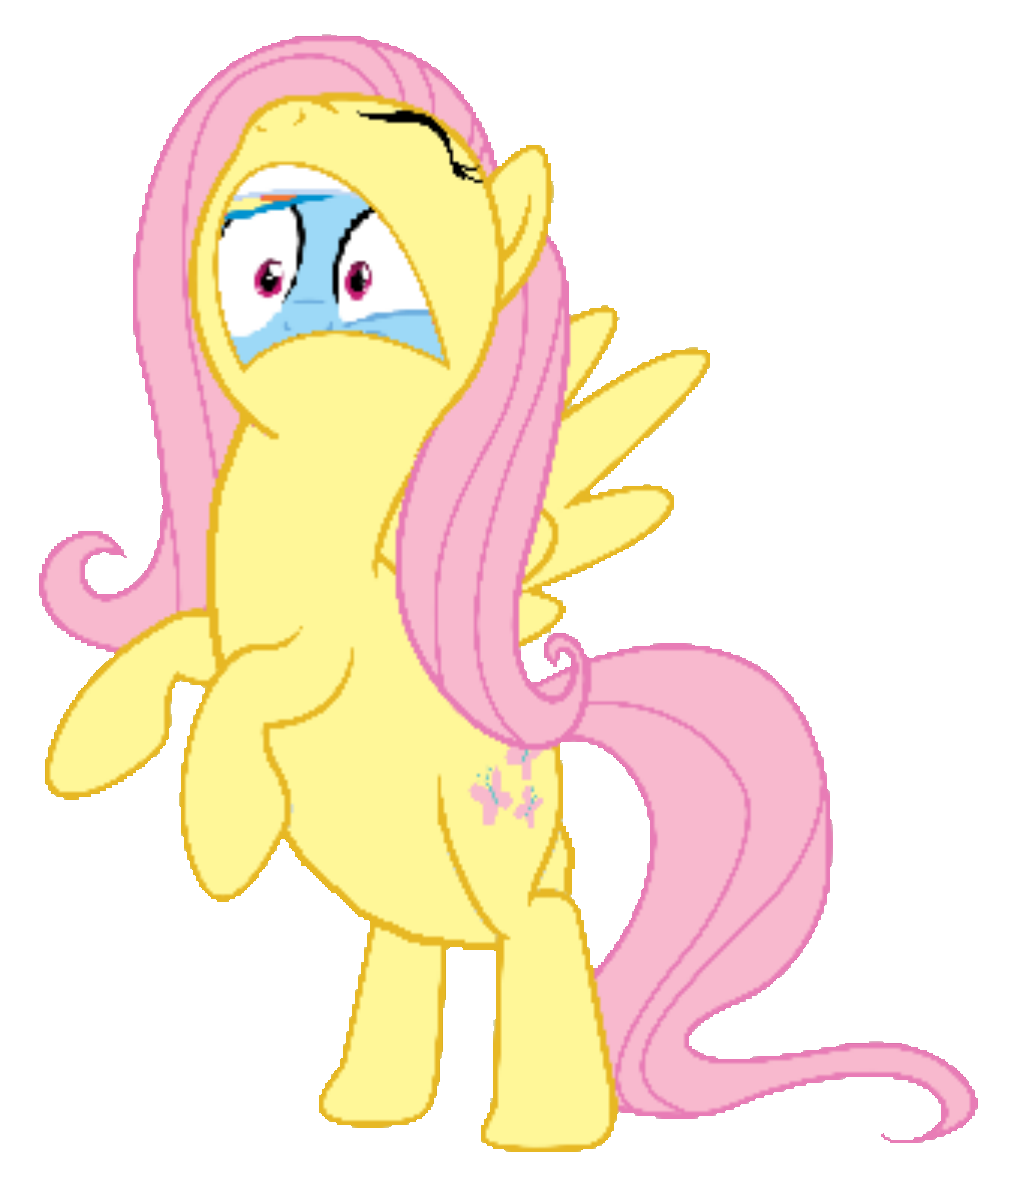 Rainbow Dash is going to be swallowed by Fluttervore on ... Anthro Fluttershy Vore